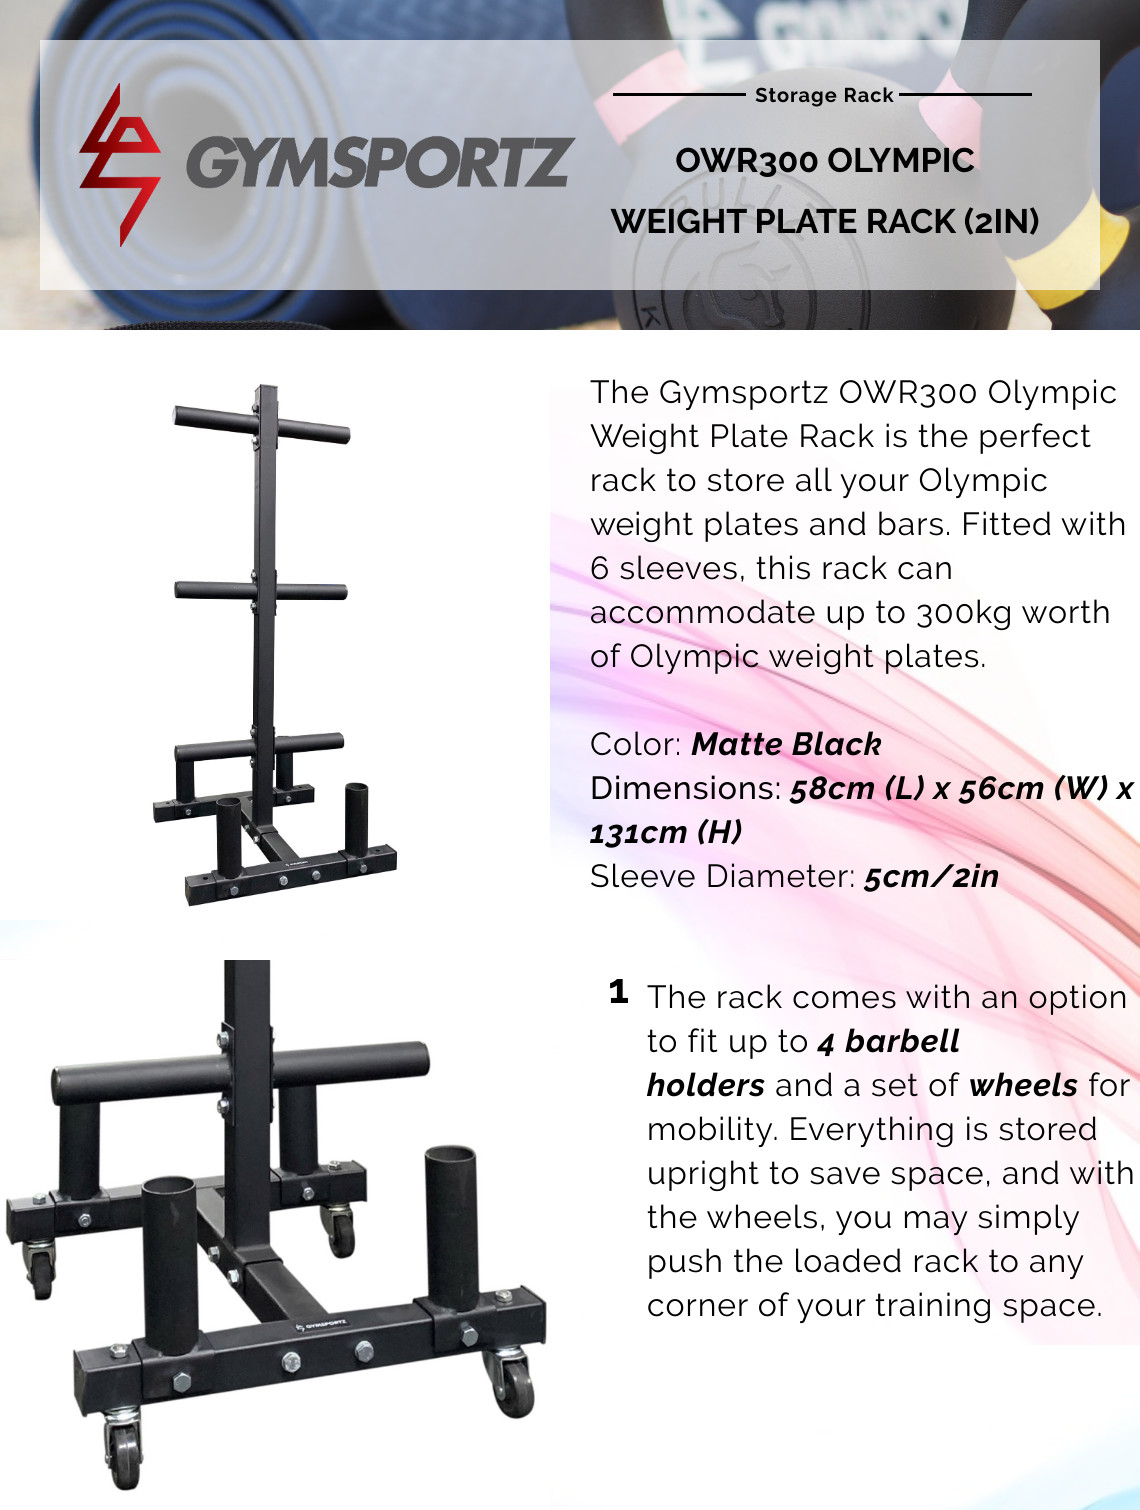 Owr300 Olympic Weight Plate Rack 2in Gymsportz Pte Ltd